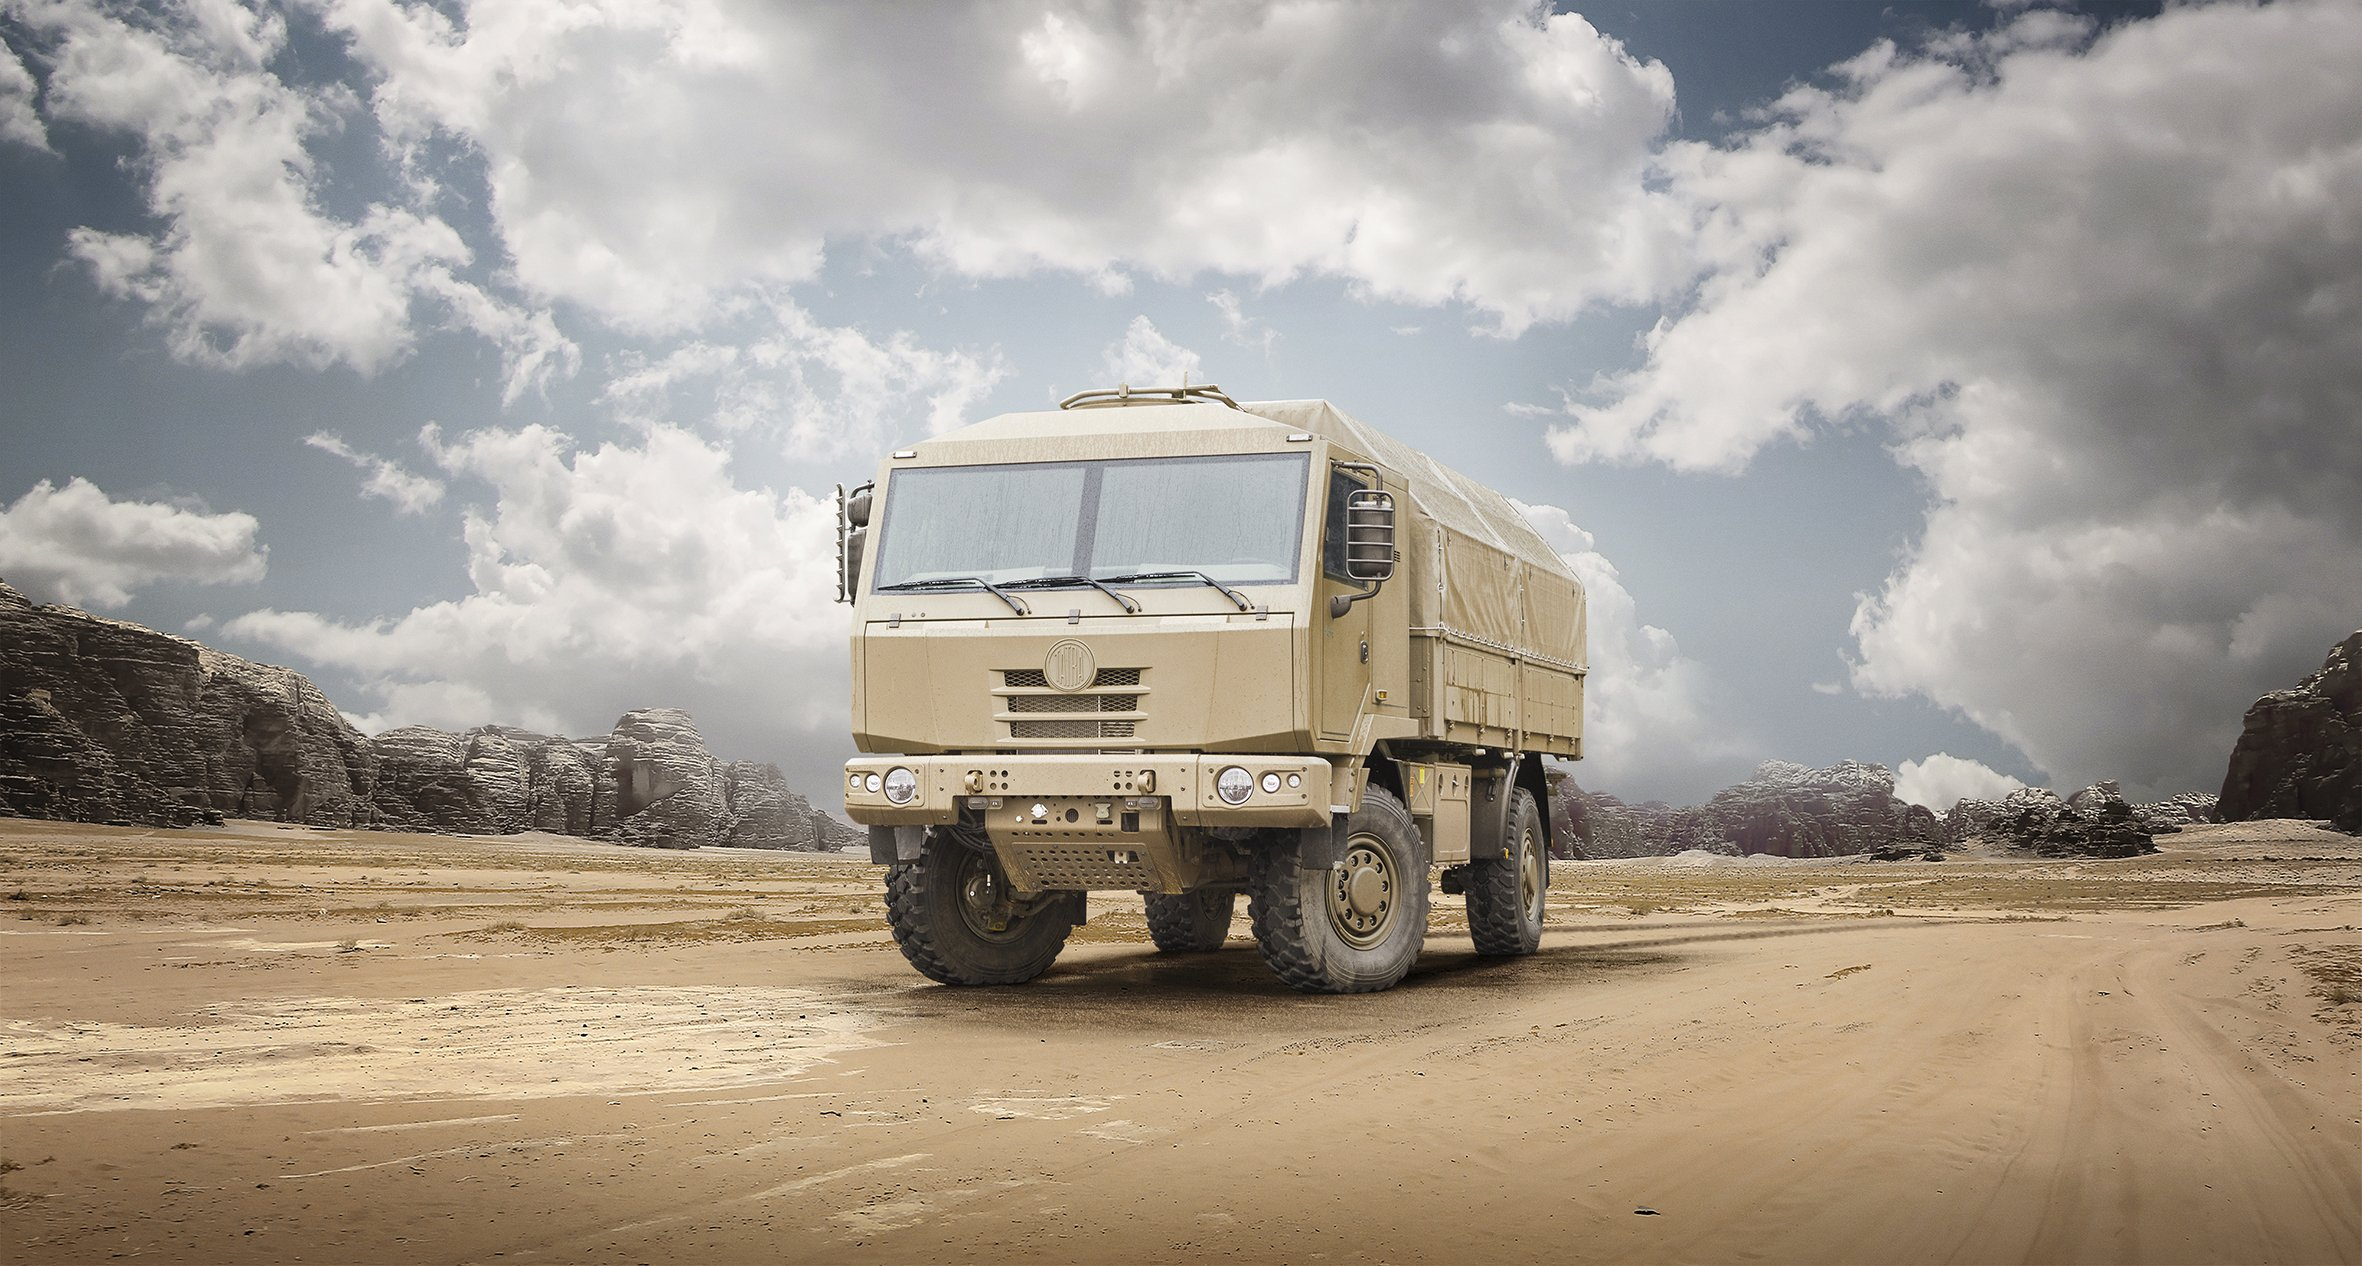 The companies of CZECHOSLOVAK GROUP and TATRA TRUCKS to take part in IDEX 2019 defence technology exhibition in Abu Dhabi